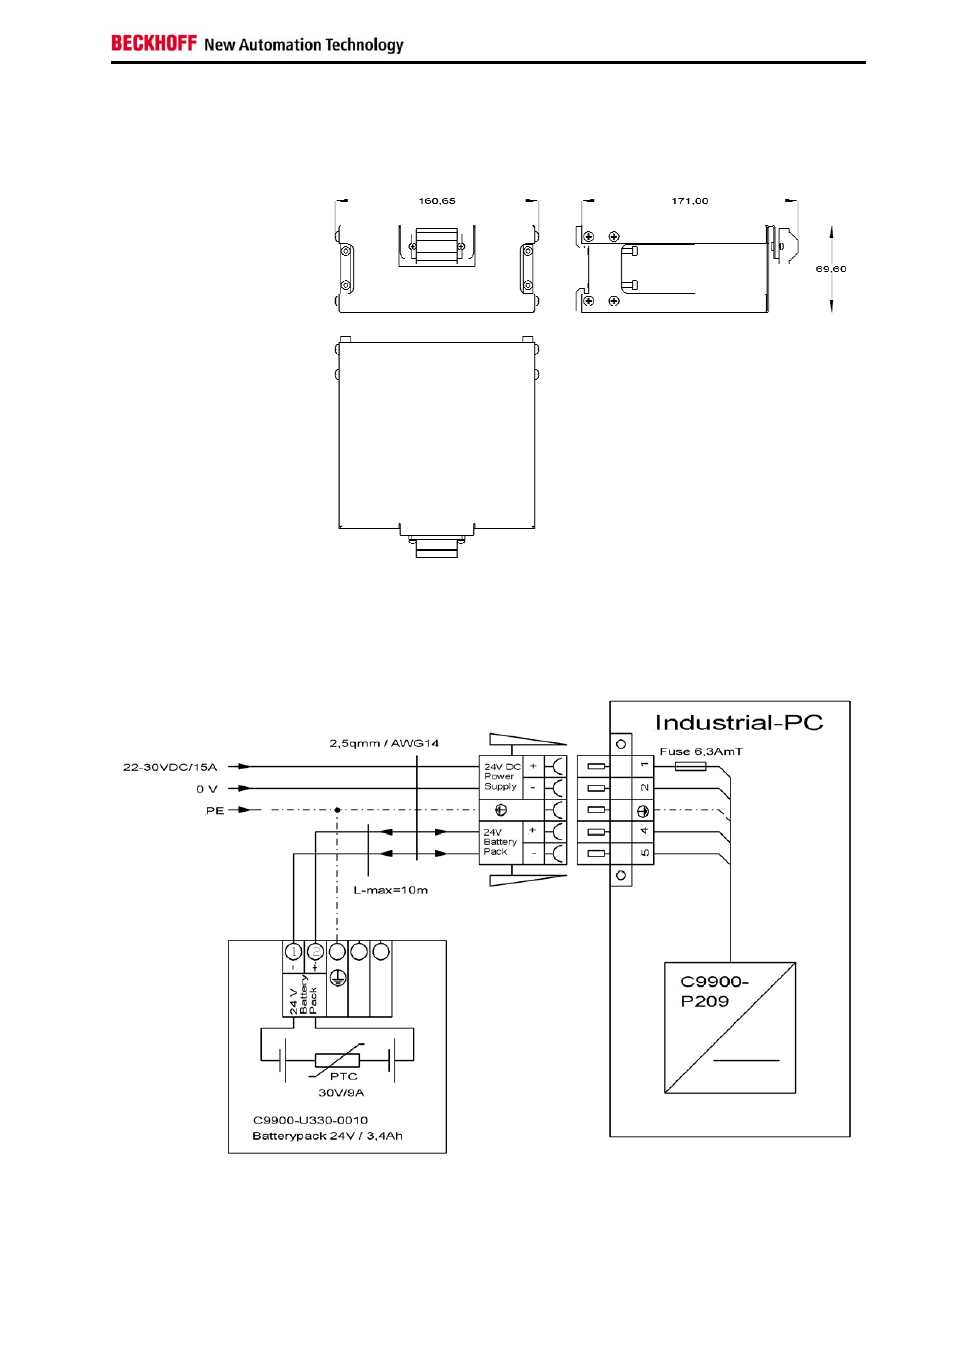 assembly dimensions, wiring diagram beckhoff c9900 u330 0010 userassembly dimensions, wiring diagram \u2013 beckhoff c9900 u330 0010 user manual